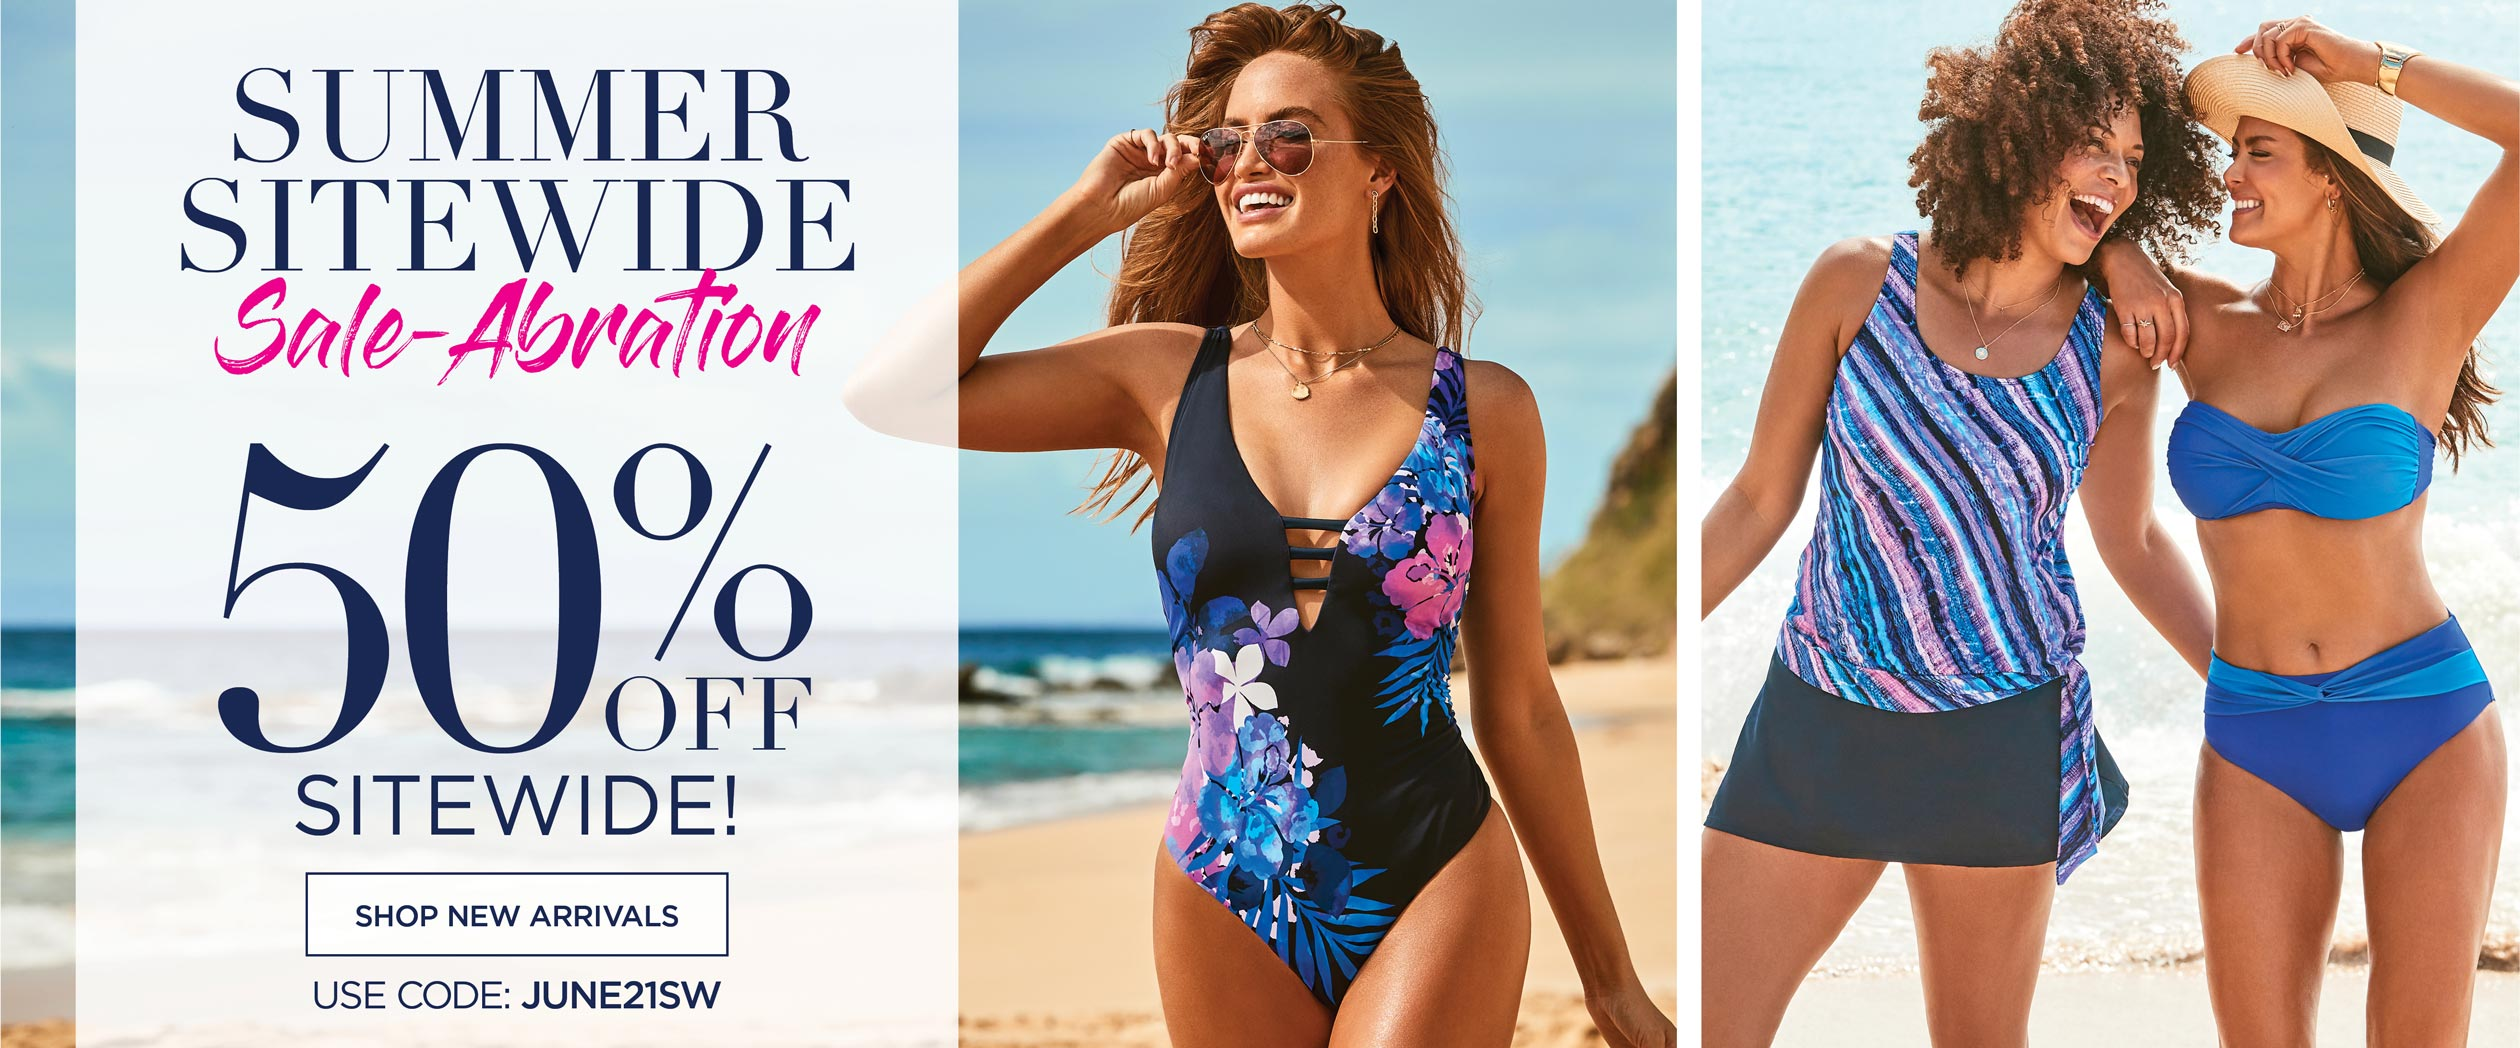 SUMMER SITEWIDE SALE-ABRATION - 50% OFF SITEWIDE! - SHOP NEW ARRIVALS - USE CODE: JUNE21SW